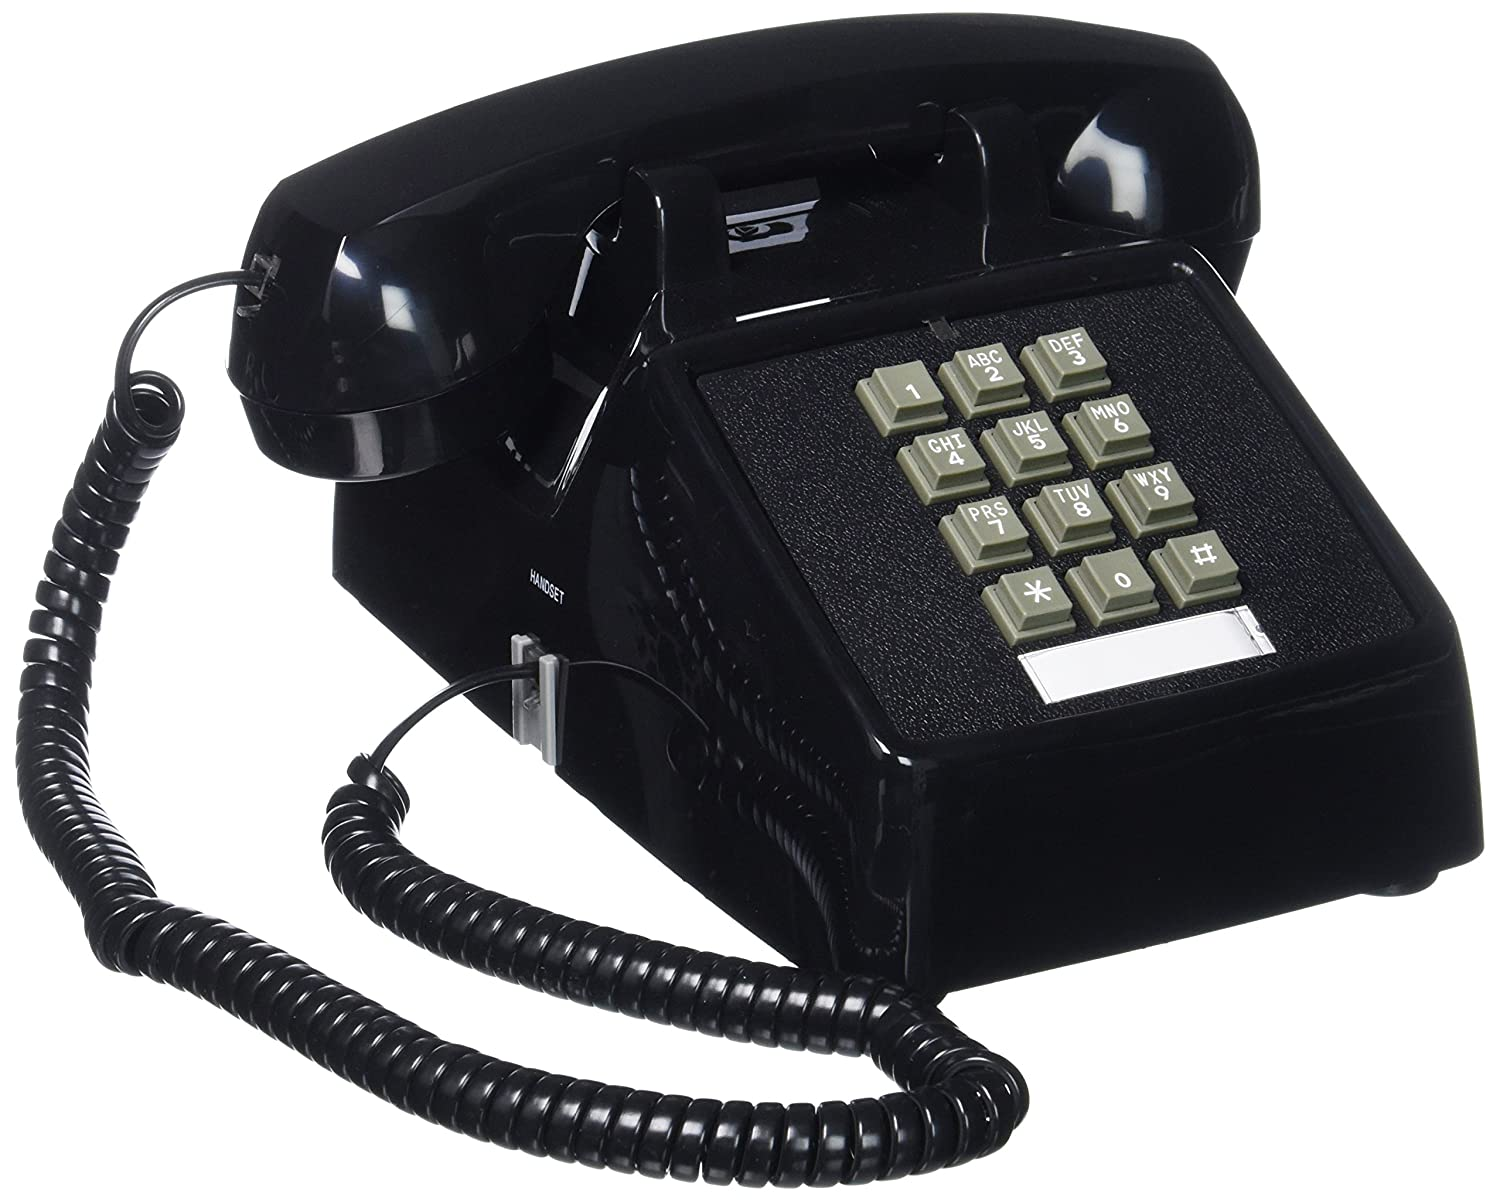 Old Fashion Phones Images